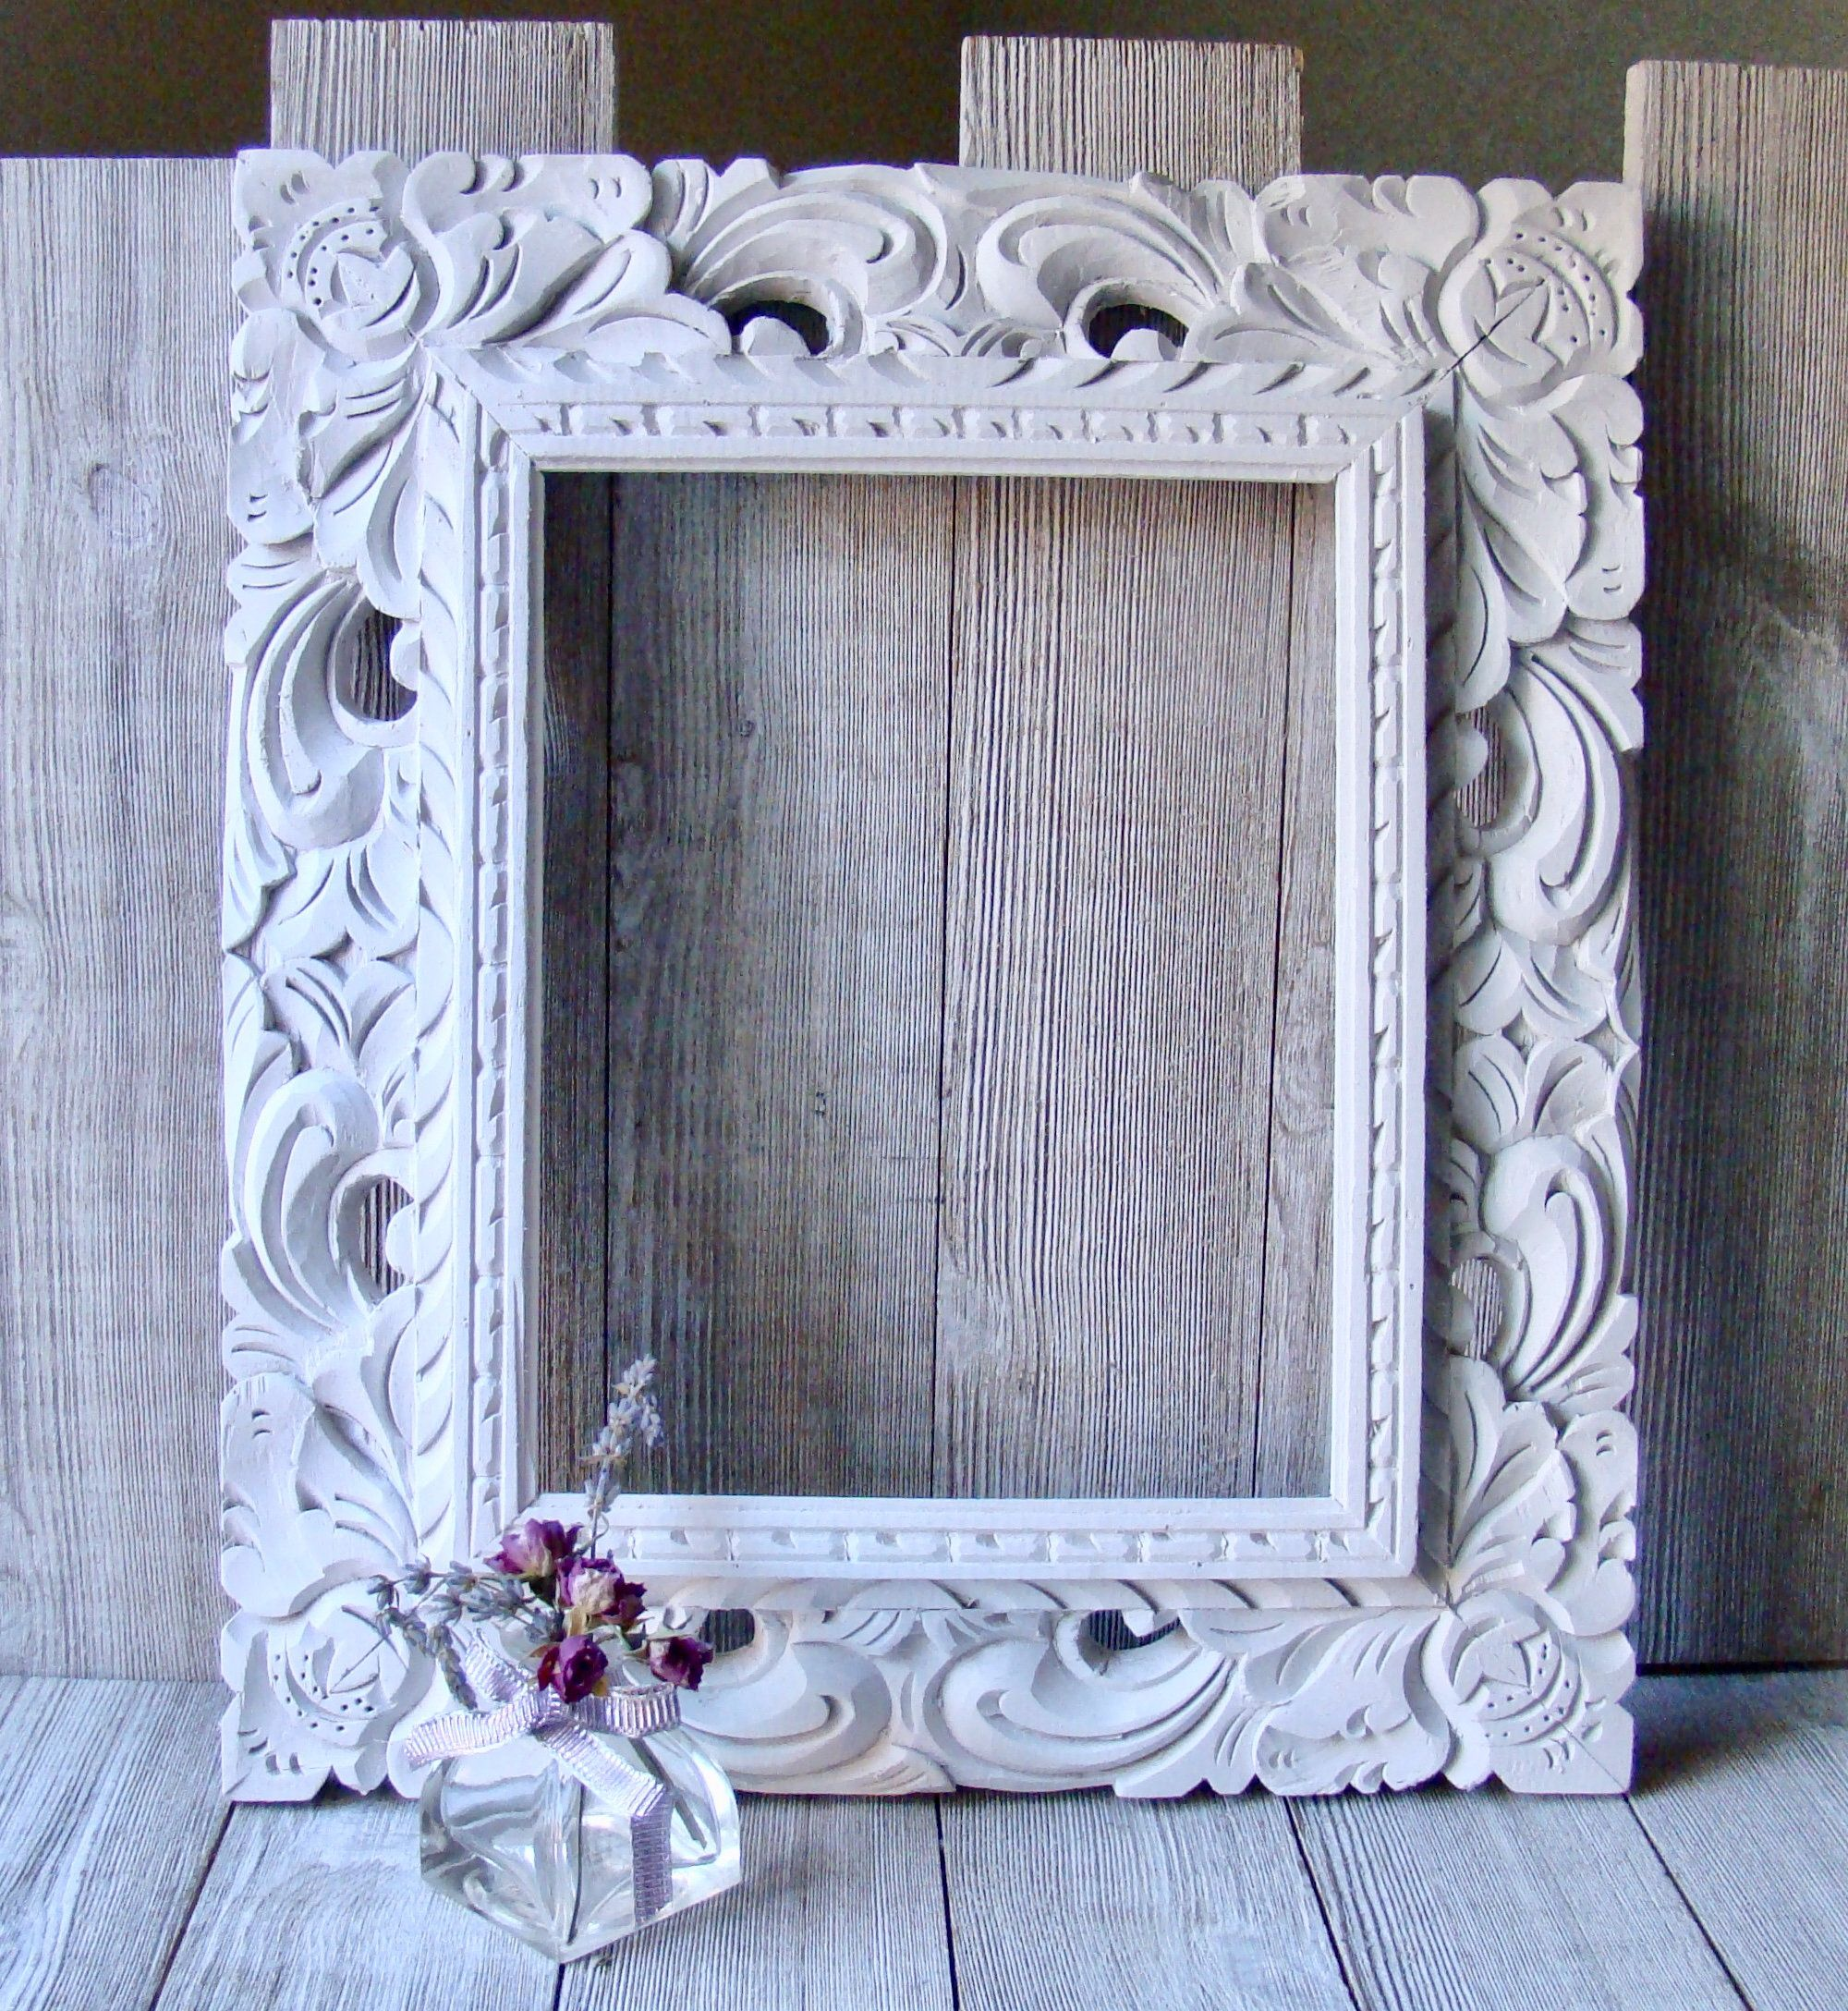 8 X 10 White Hand Carved Rustic Wood Frame Open Frame No Glass Or Backing Rustic Frames Rustic Wood Frame Carved Wood Frame